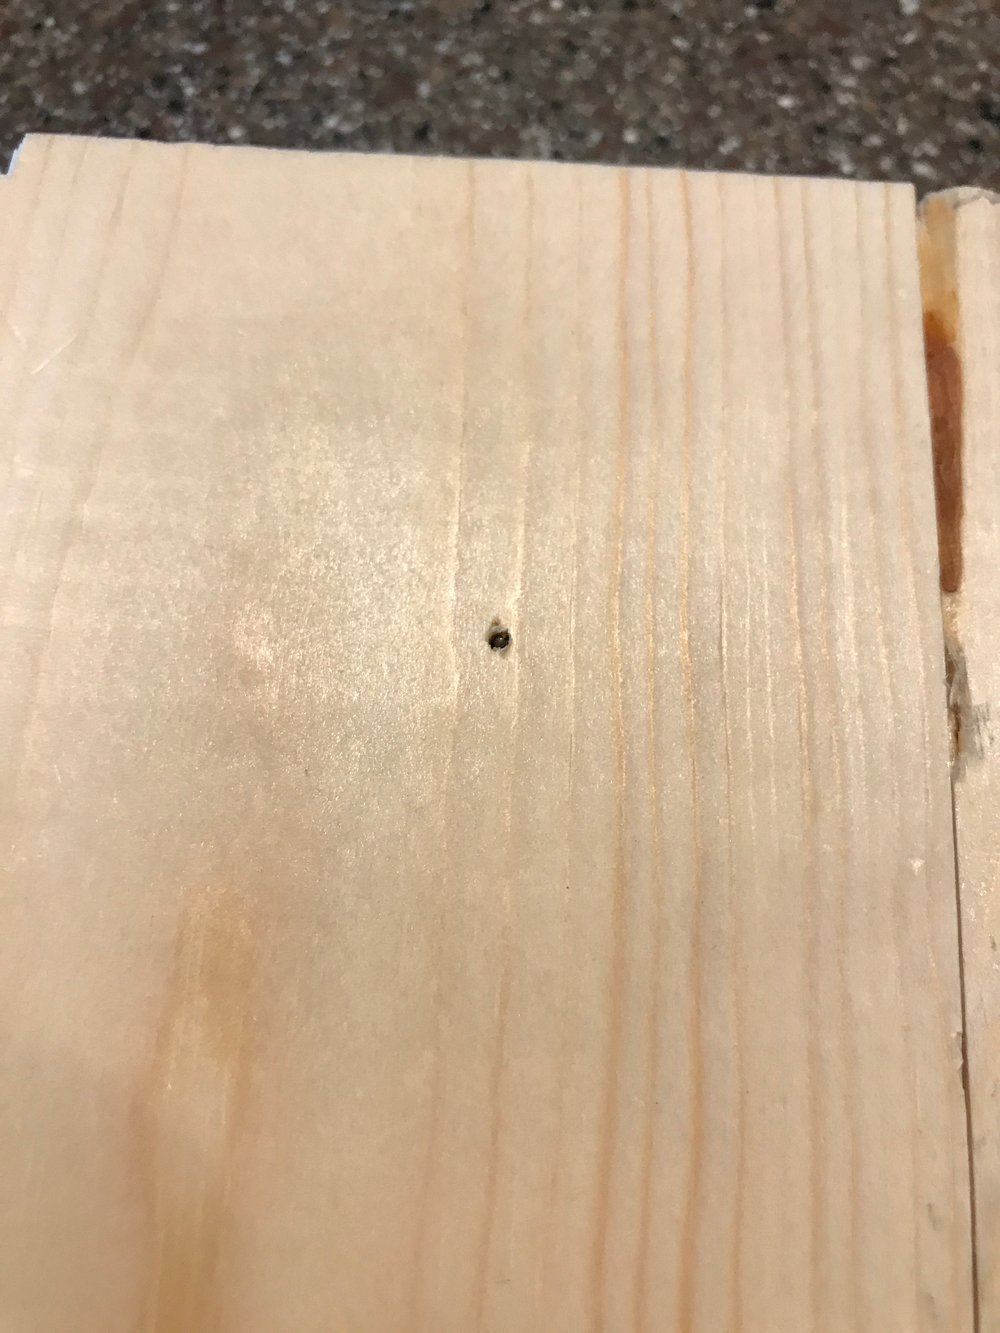 This is where one of my screws was just a little too long, and came through the front. Luckily, my stain is darker and will hide this well.